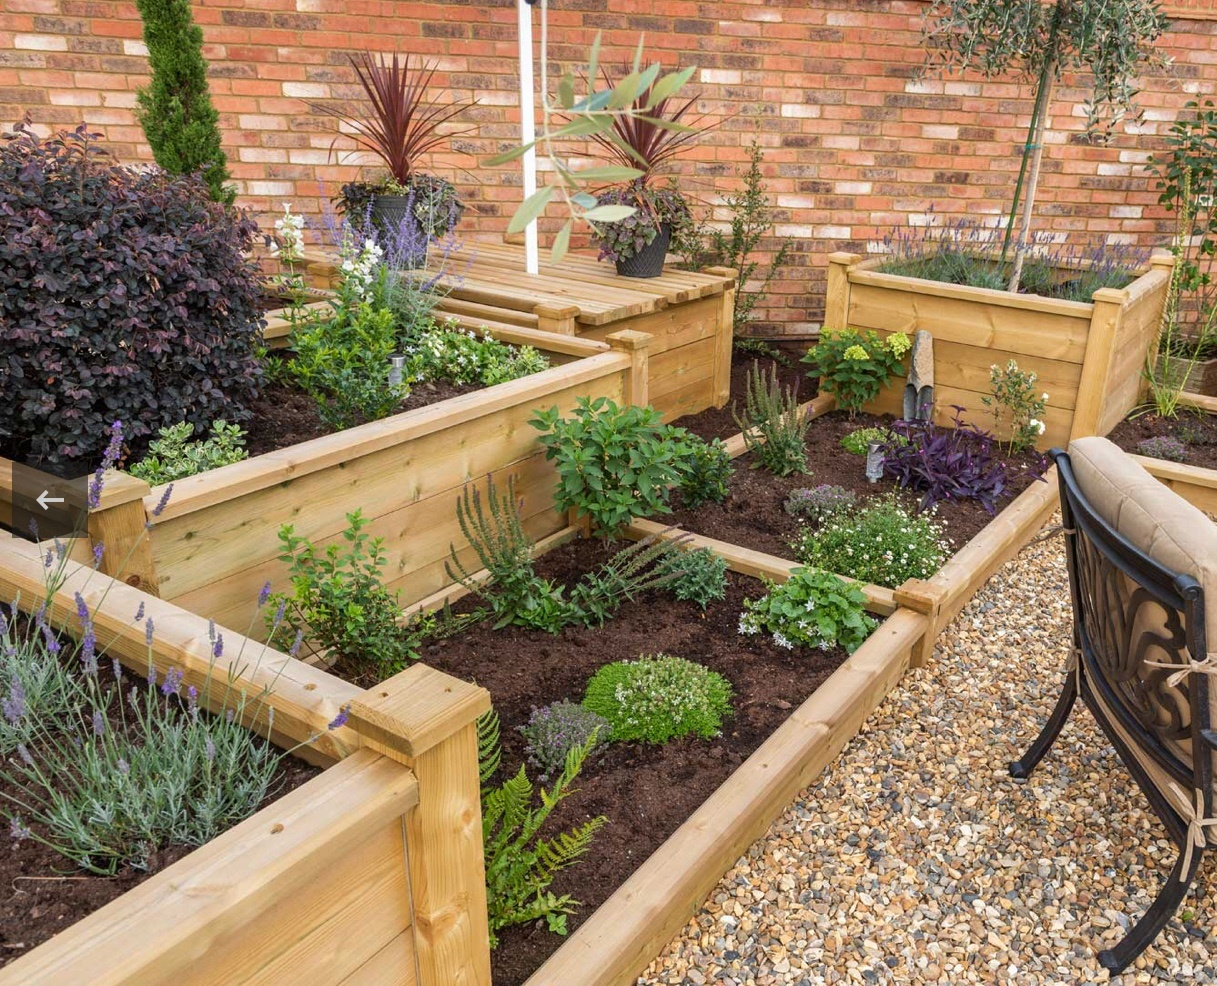 Wooden raised planters